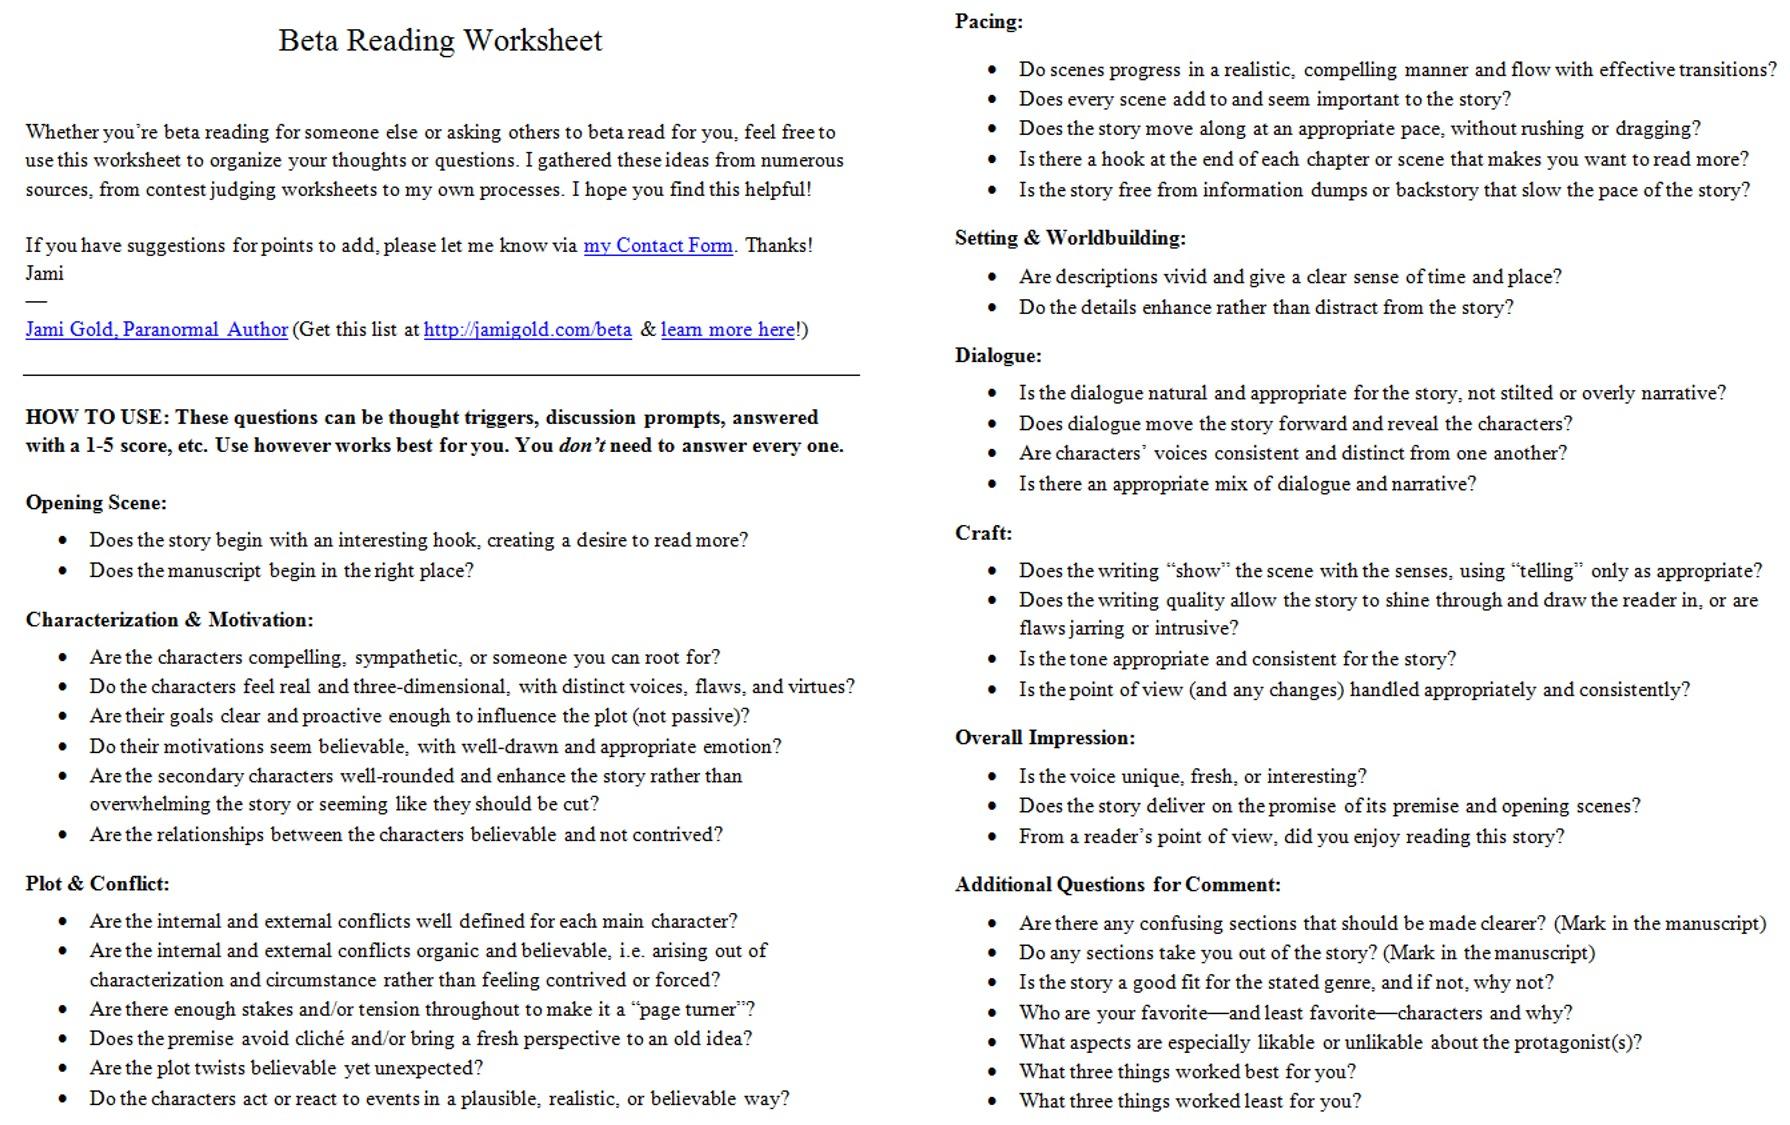 Proatmealus  Unique Worksheets For Writers  Jami Gold Paranormal Author With Excellent Screen Shot Of The Twopage Beta Reading Worksheet With Breathtaking Circumference Of A Circle Word Problems Worksheet Also Naming Covalent Bonds Worksheet In Addition Translations Worksheet Kuta And Th Worksheets As Well As Atoms And The Periodic Table Worksheet Answers Additionally Cause And Effect Worksheets Th Grade From Jamigoldcom With Proatmealus  Excellent Worksheets For Writers  Jami Gold Paranormal Author With Breathtaking Screen Shot Of The Twopage Beta Reading Worksheet And Unique Circumference Of A Circle Word Problems Worksheet Also Naming Covalent Bonds Worksheet In Addition Translations Worksheet Kuta From Jamigoldcom